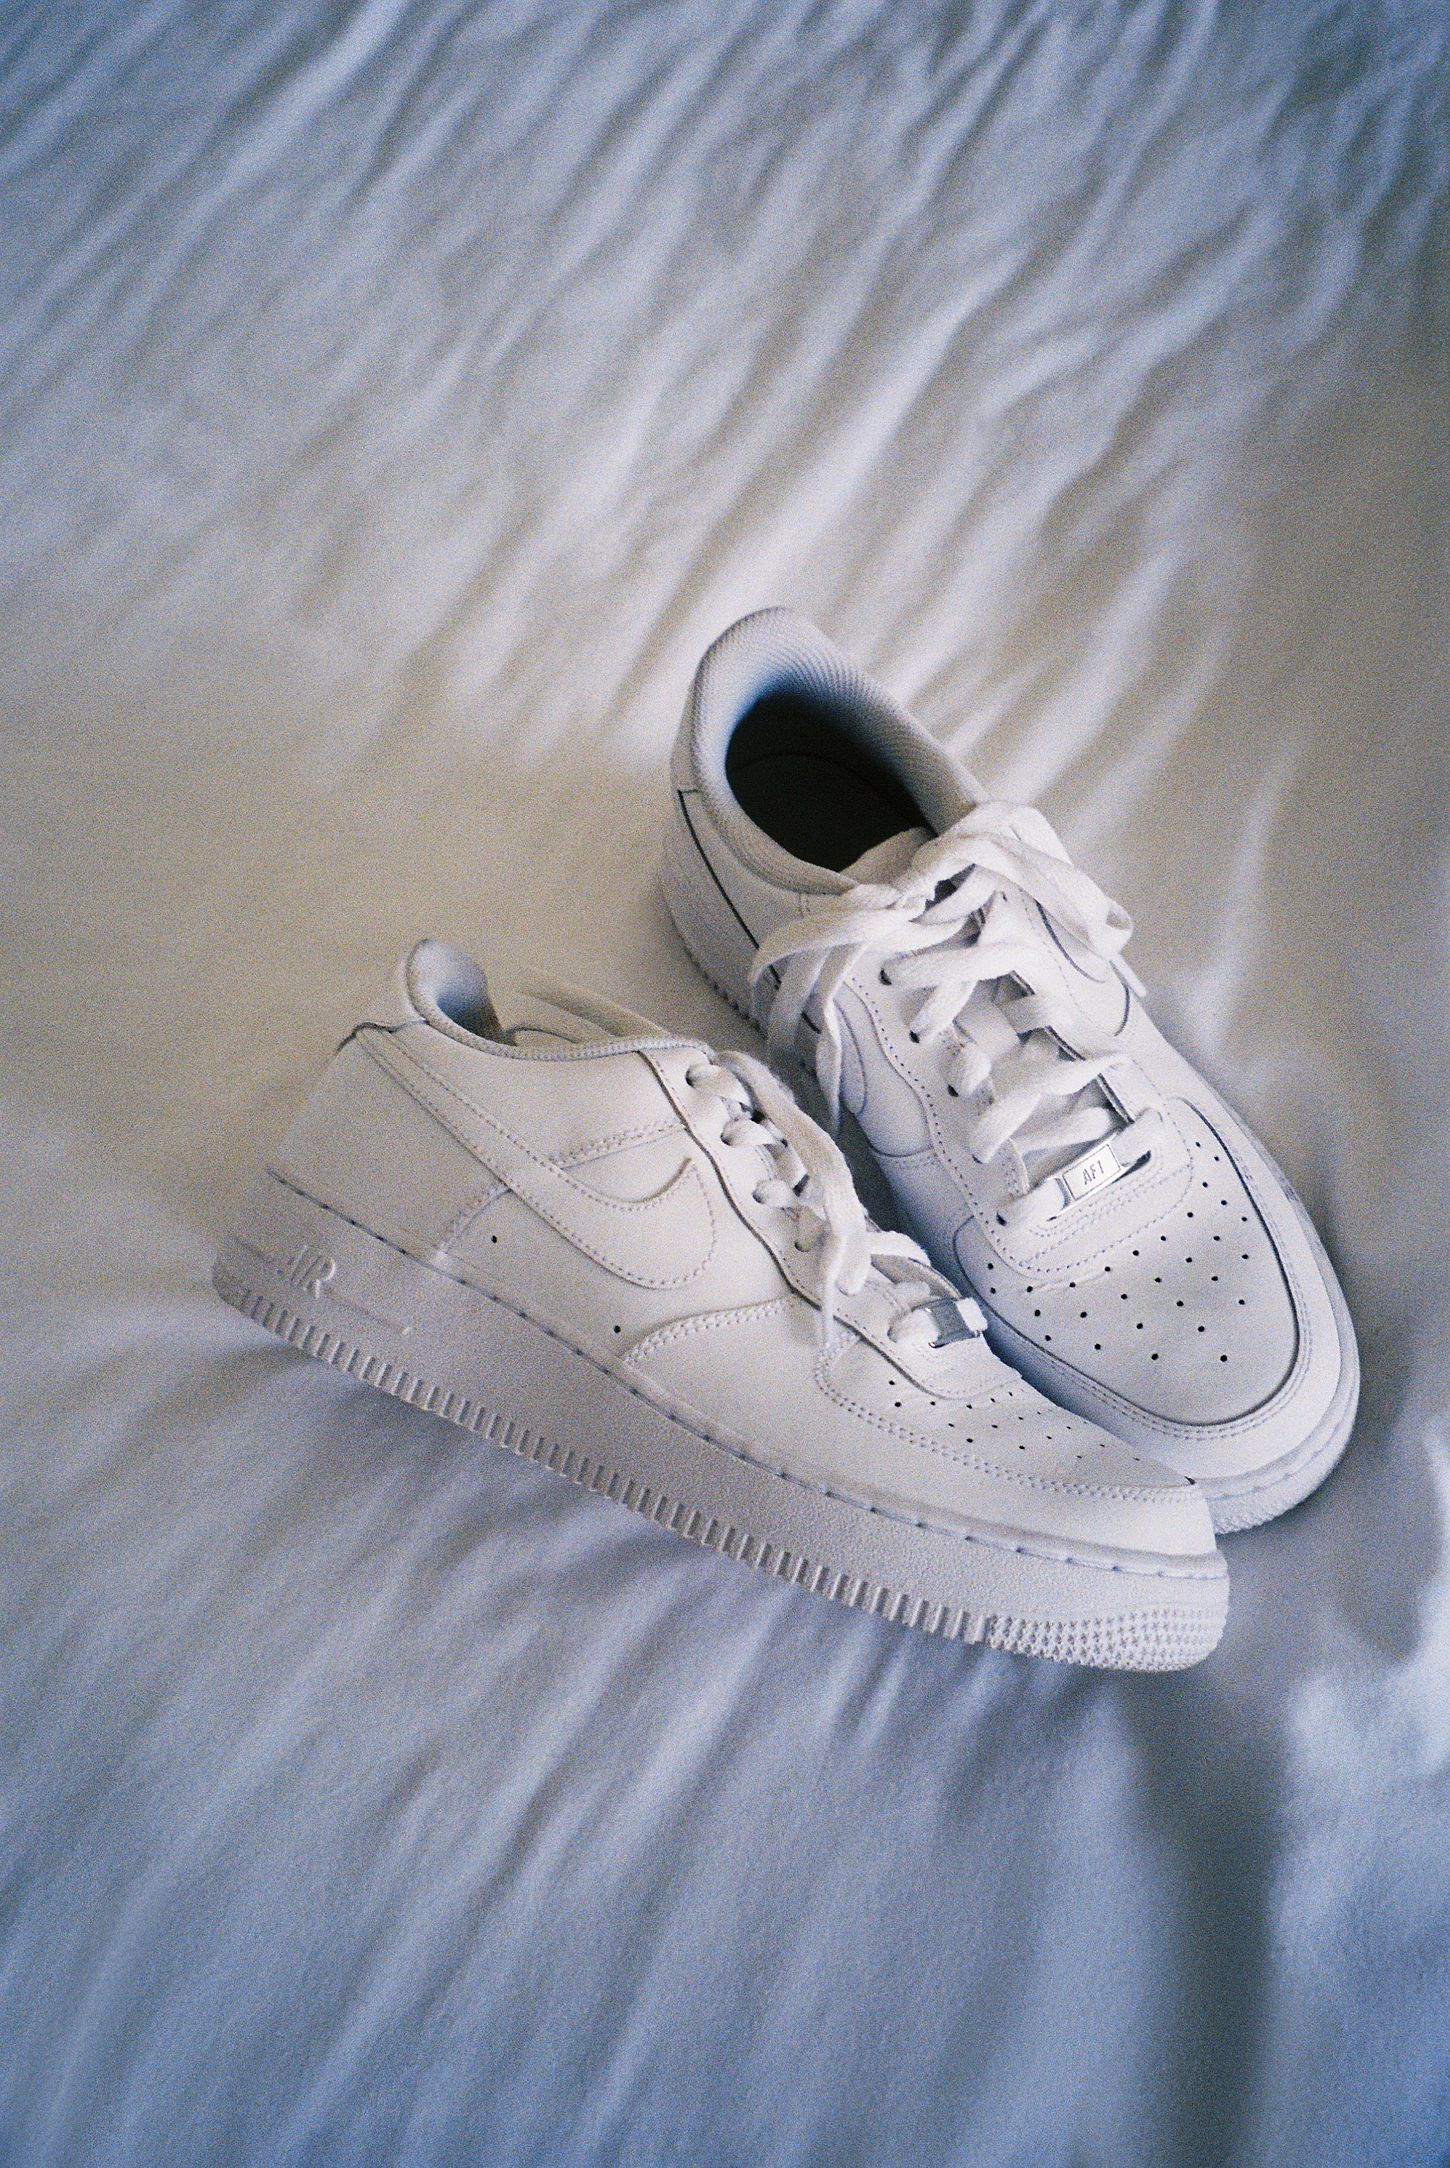 b550997c6a3 Nike Air Force 1 '07 Sneaker